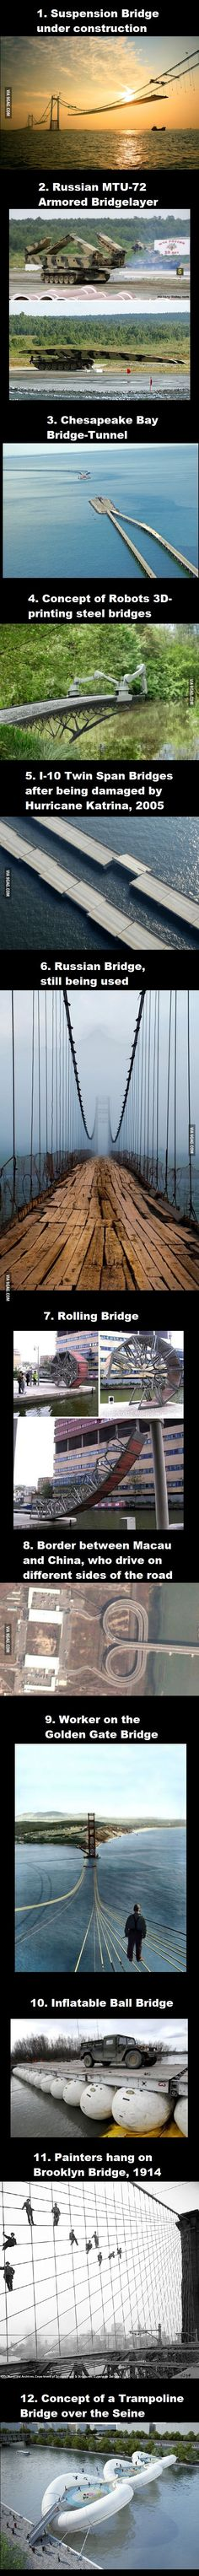 Collection of interesting pictures I found over the years, Part 32: Bridges